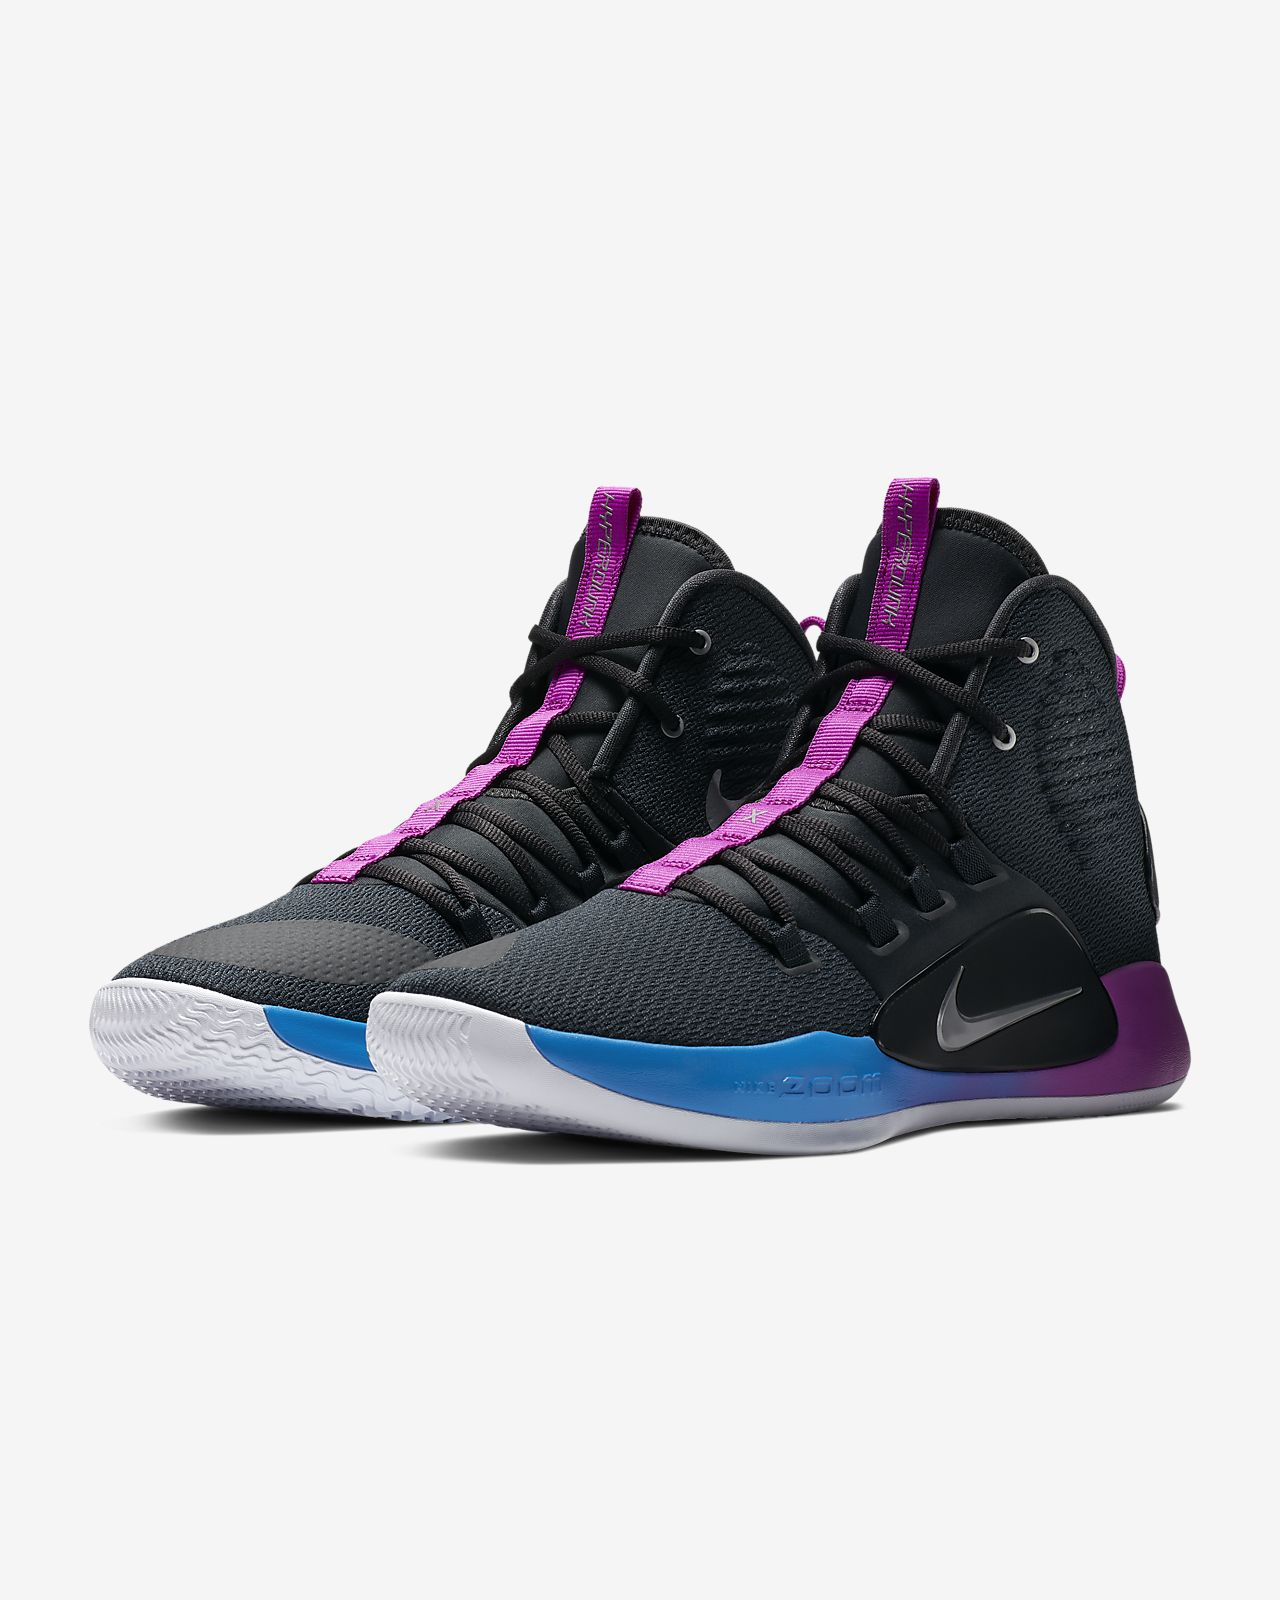 35ccf3008bc Low Resolution Nike Hyperdunk X Basketball Shoe Nike Hyperdunk X Basketball  Shoe